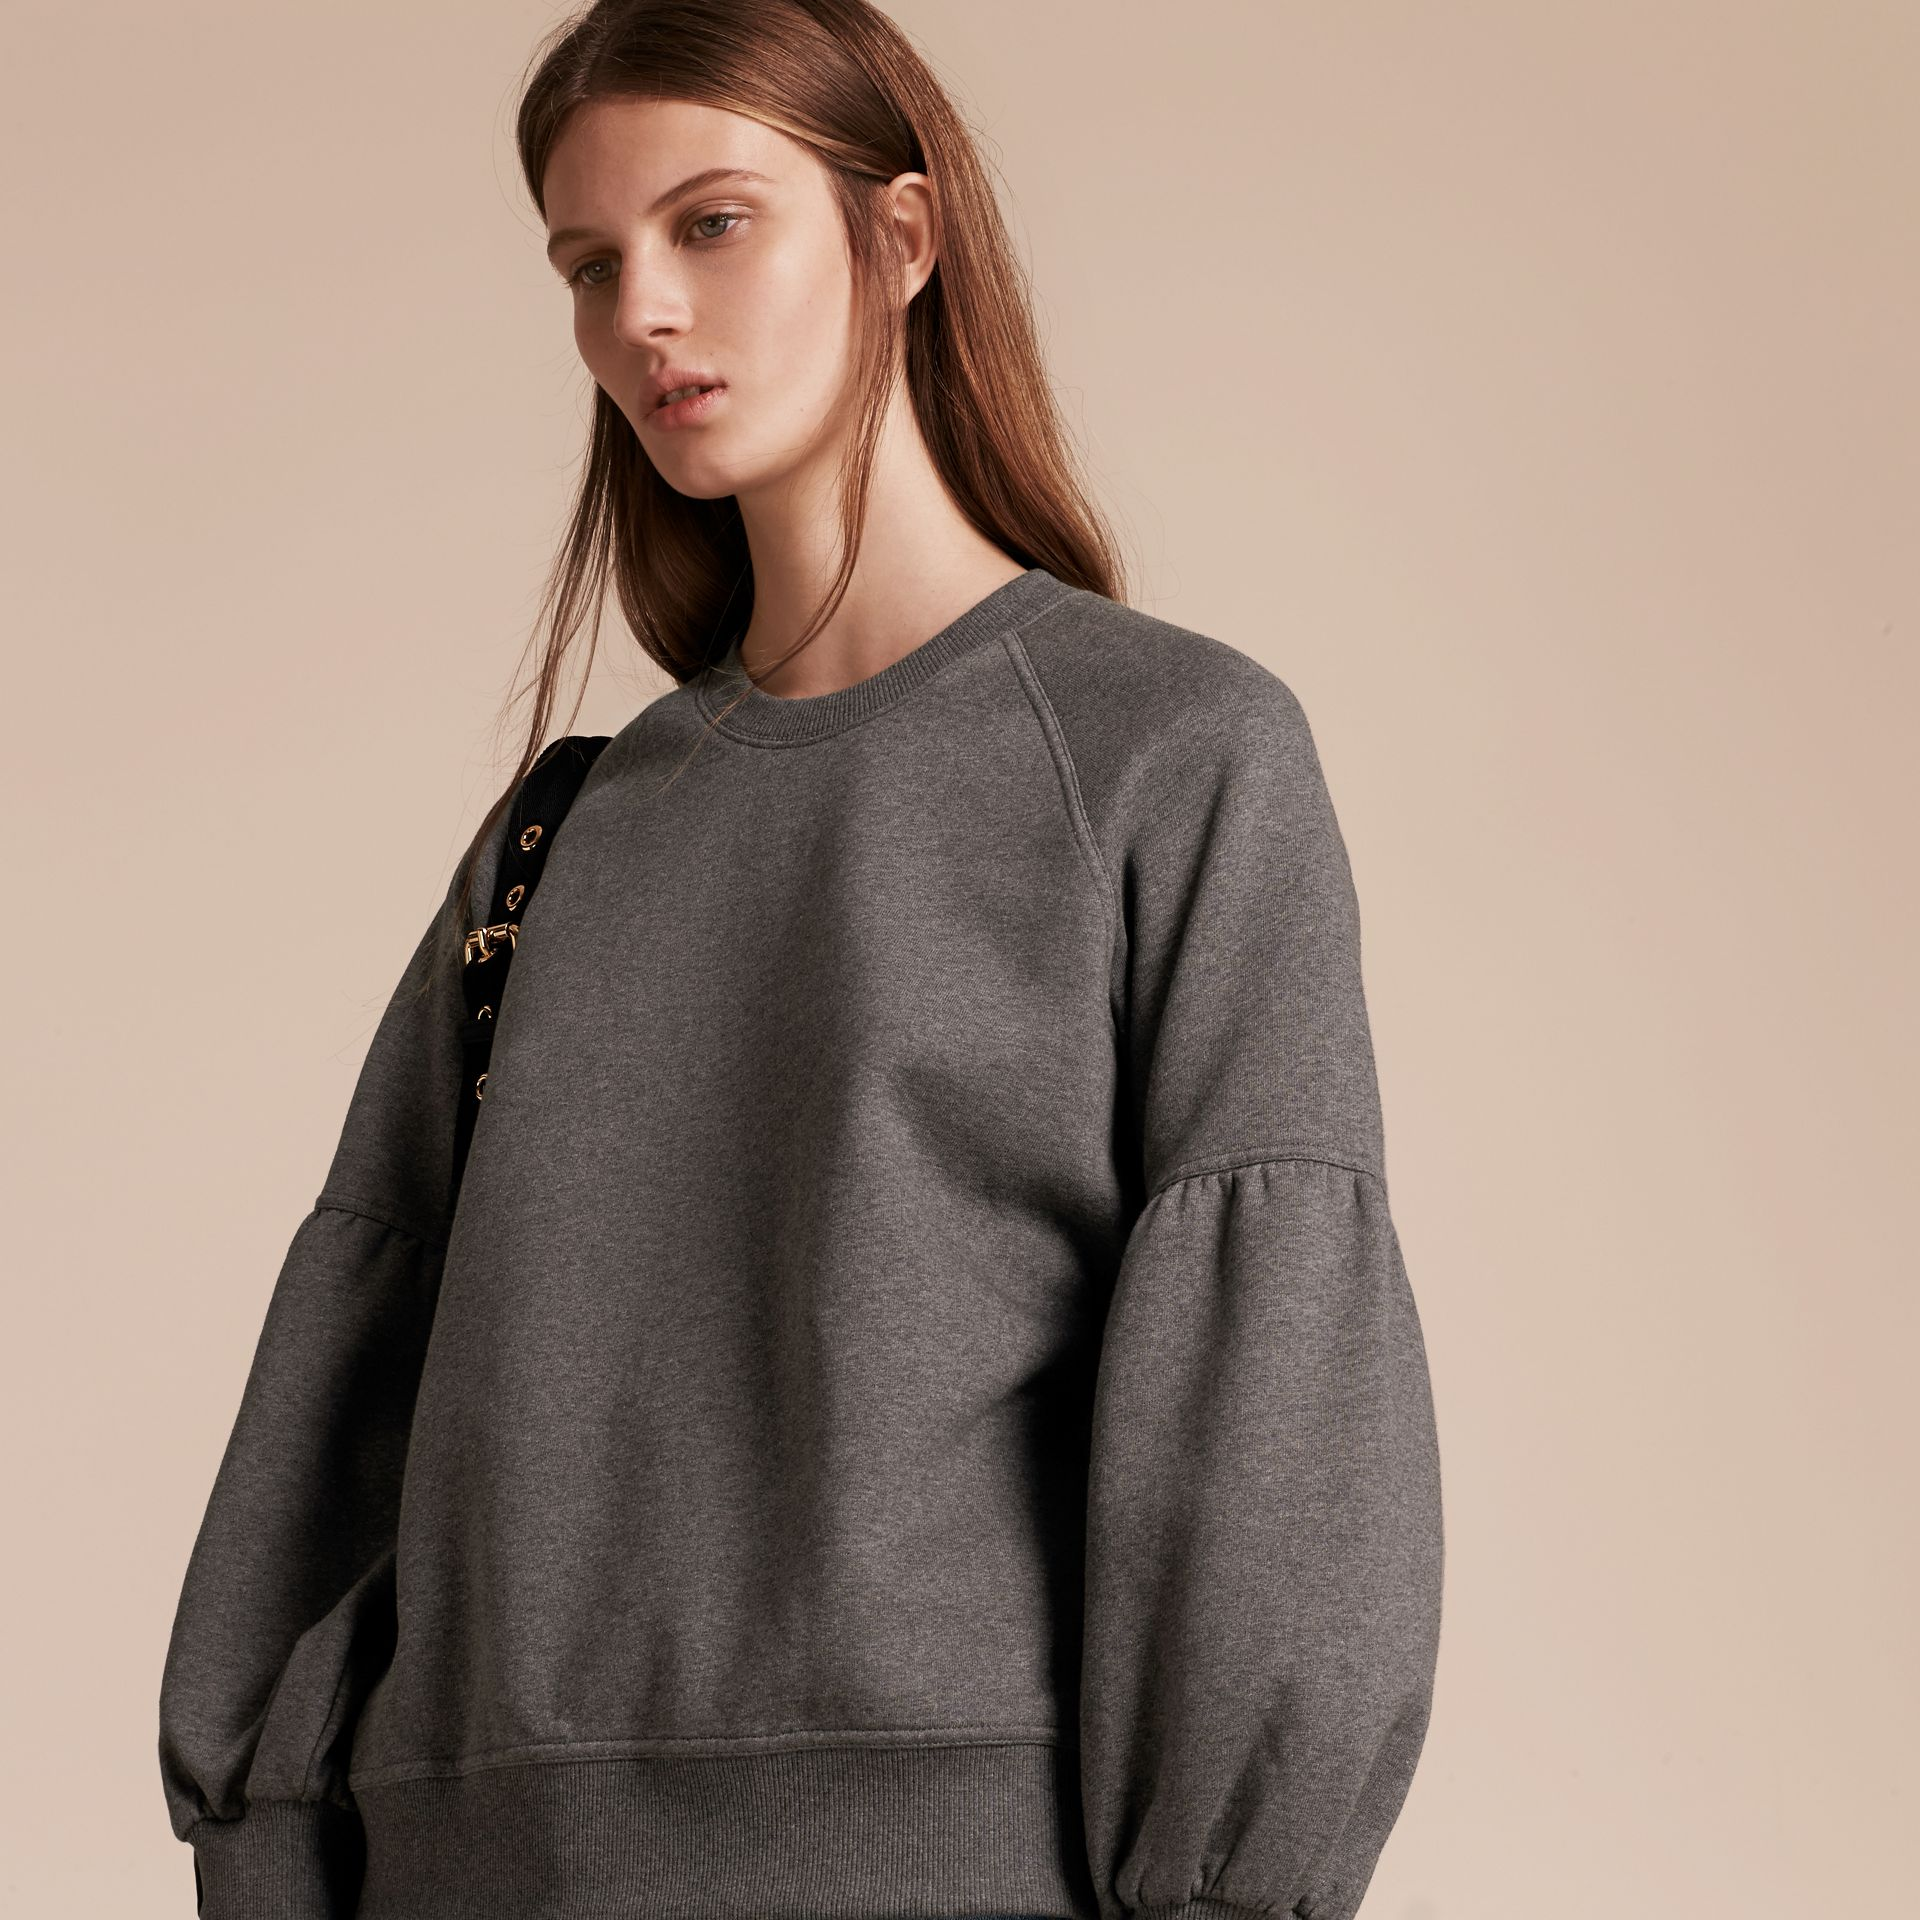 Brushed-back Jersey Sweatshirt with Bell Sleeves Mid Grey Melange - gallery image 5